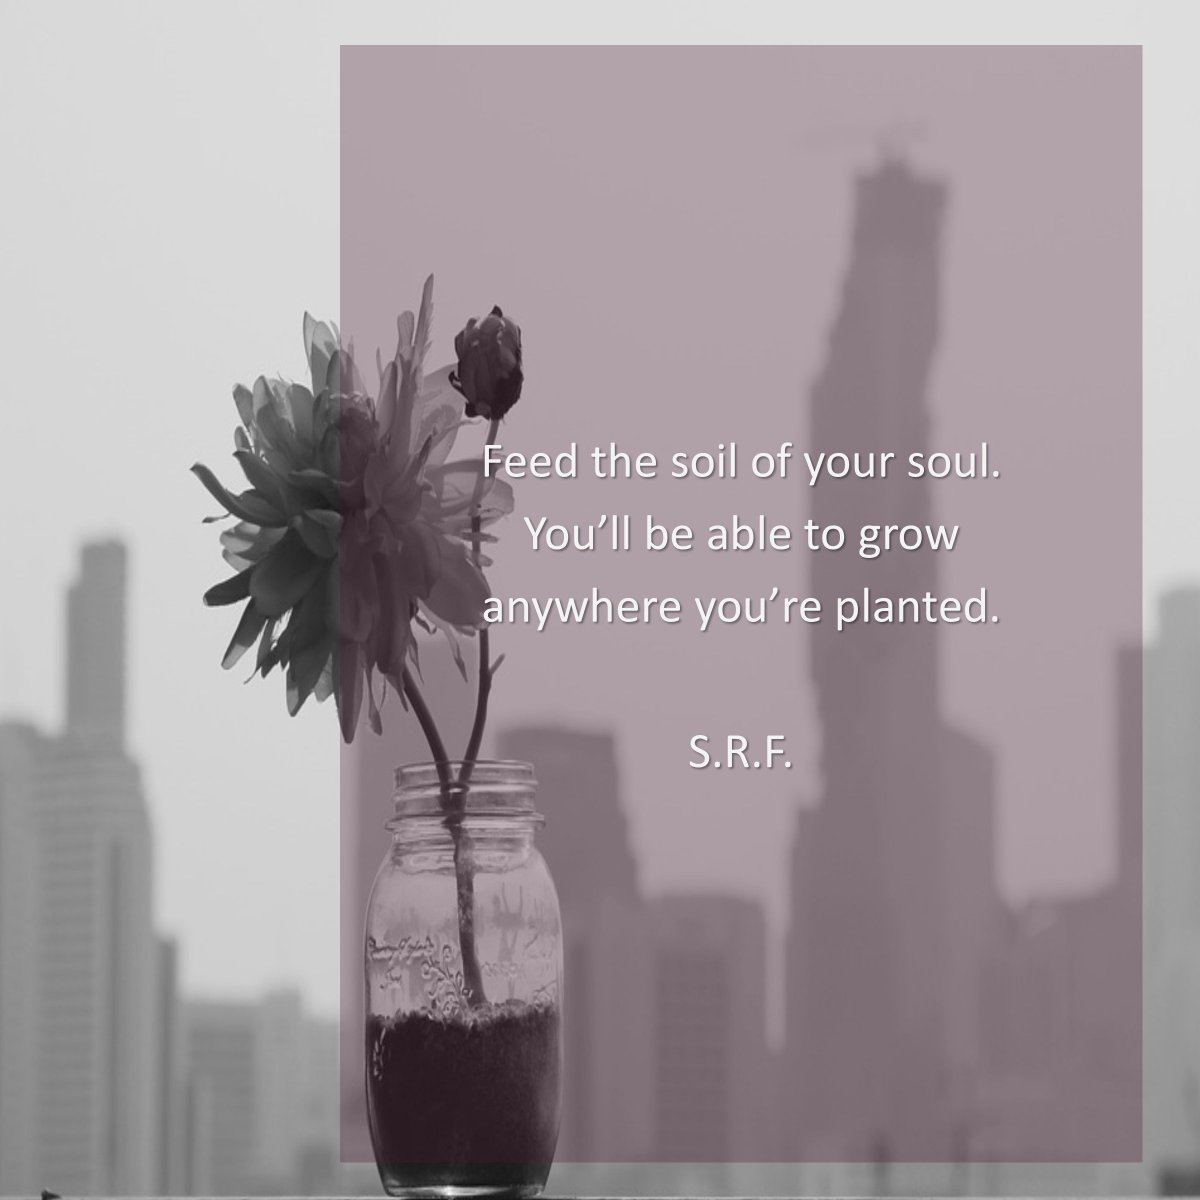 Nourish yourself right where you are for now. ~ S.R.F. #letstalkaboutfaith https://faithishowwelive.blogspot.com/2019/02/feed-your-soul.html…